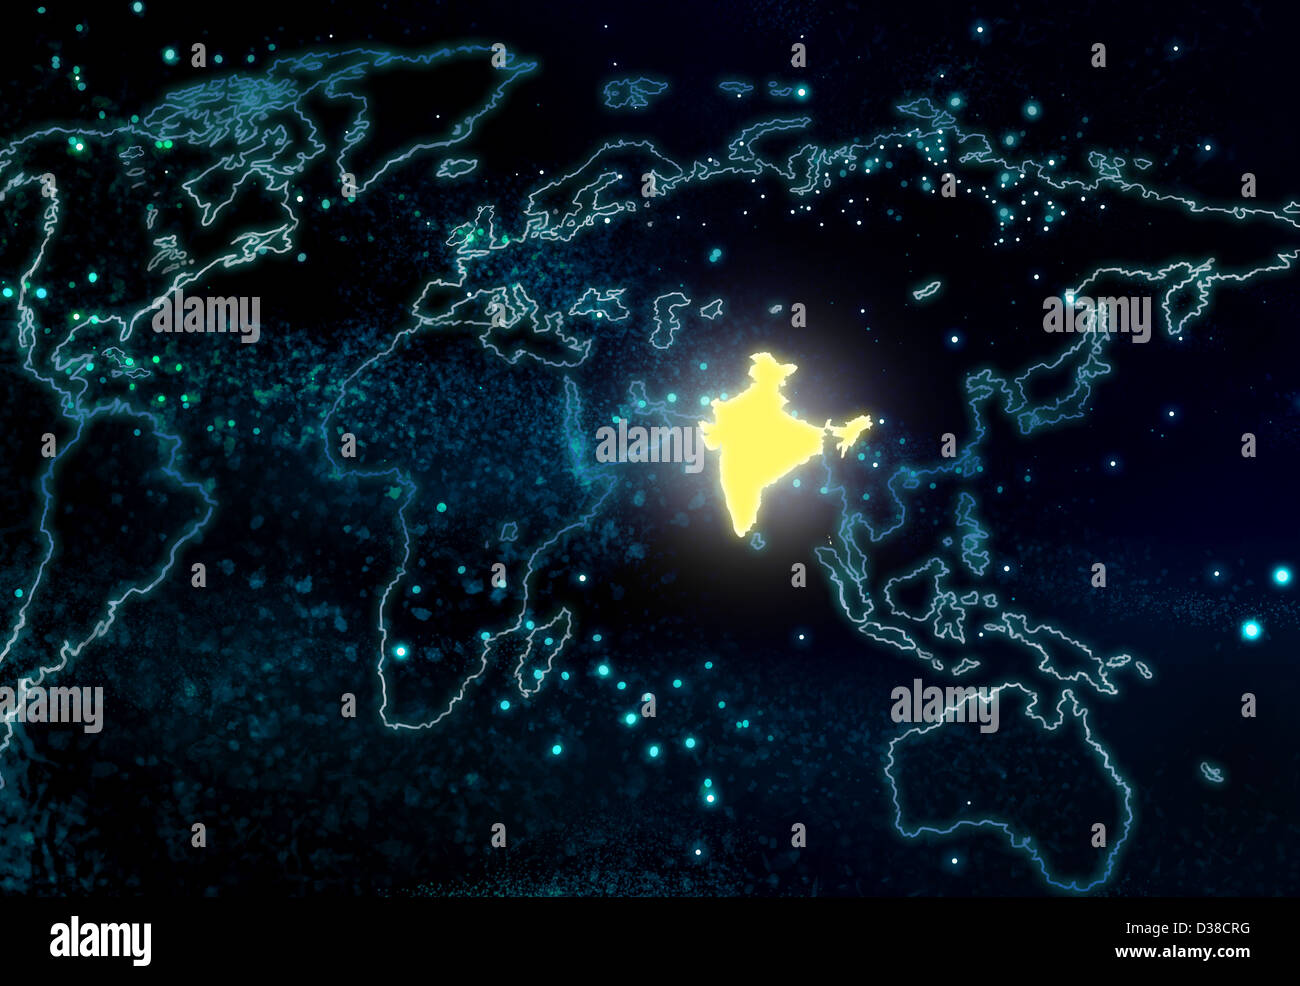 Illustrative image of world map with India highlighted Stock Photo